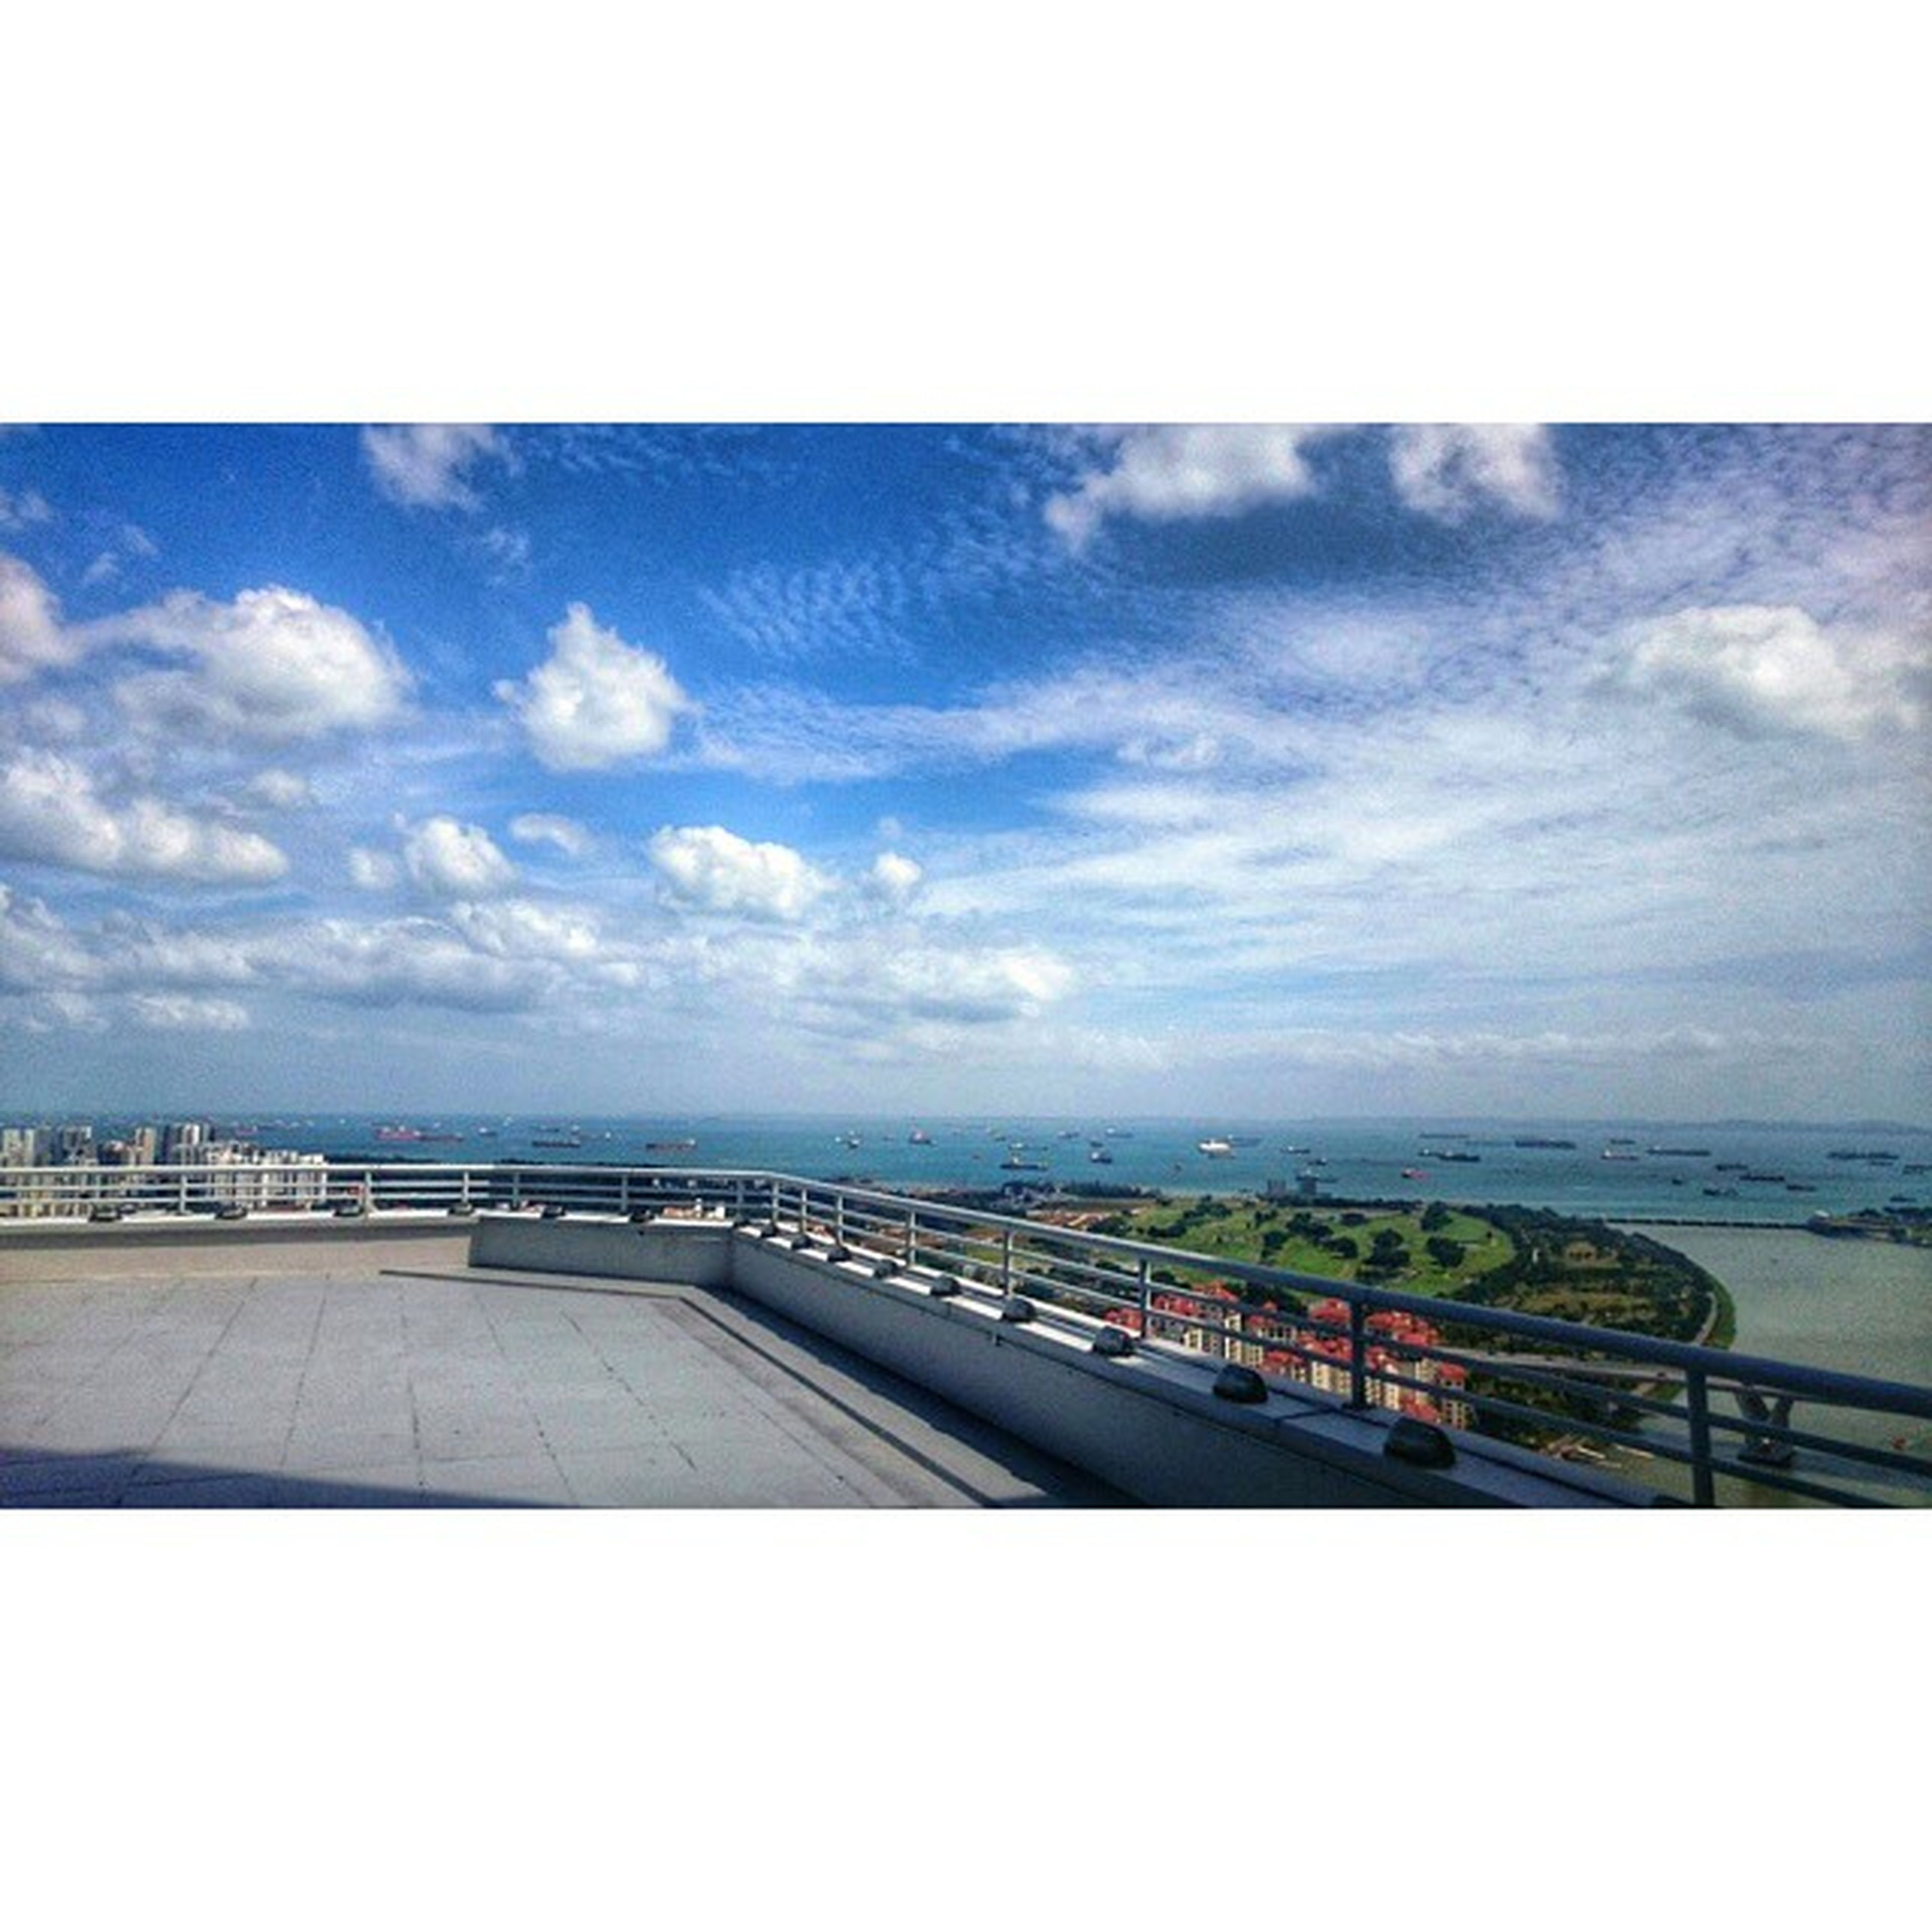 sky, transportation, cloud - sky, the way forward, cloudy, cloud, road, transfer print, diminishing perspective, road marking, sea, auto post production filter, horizon over water, vanishing point, landscape, day, nature, mode of transport, outdoors, horizon over land